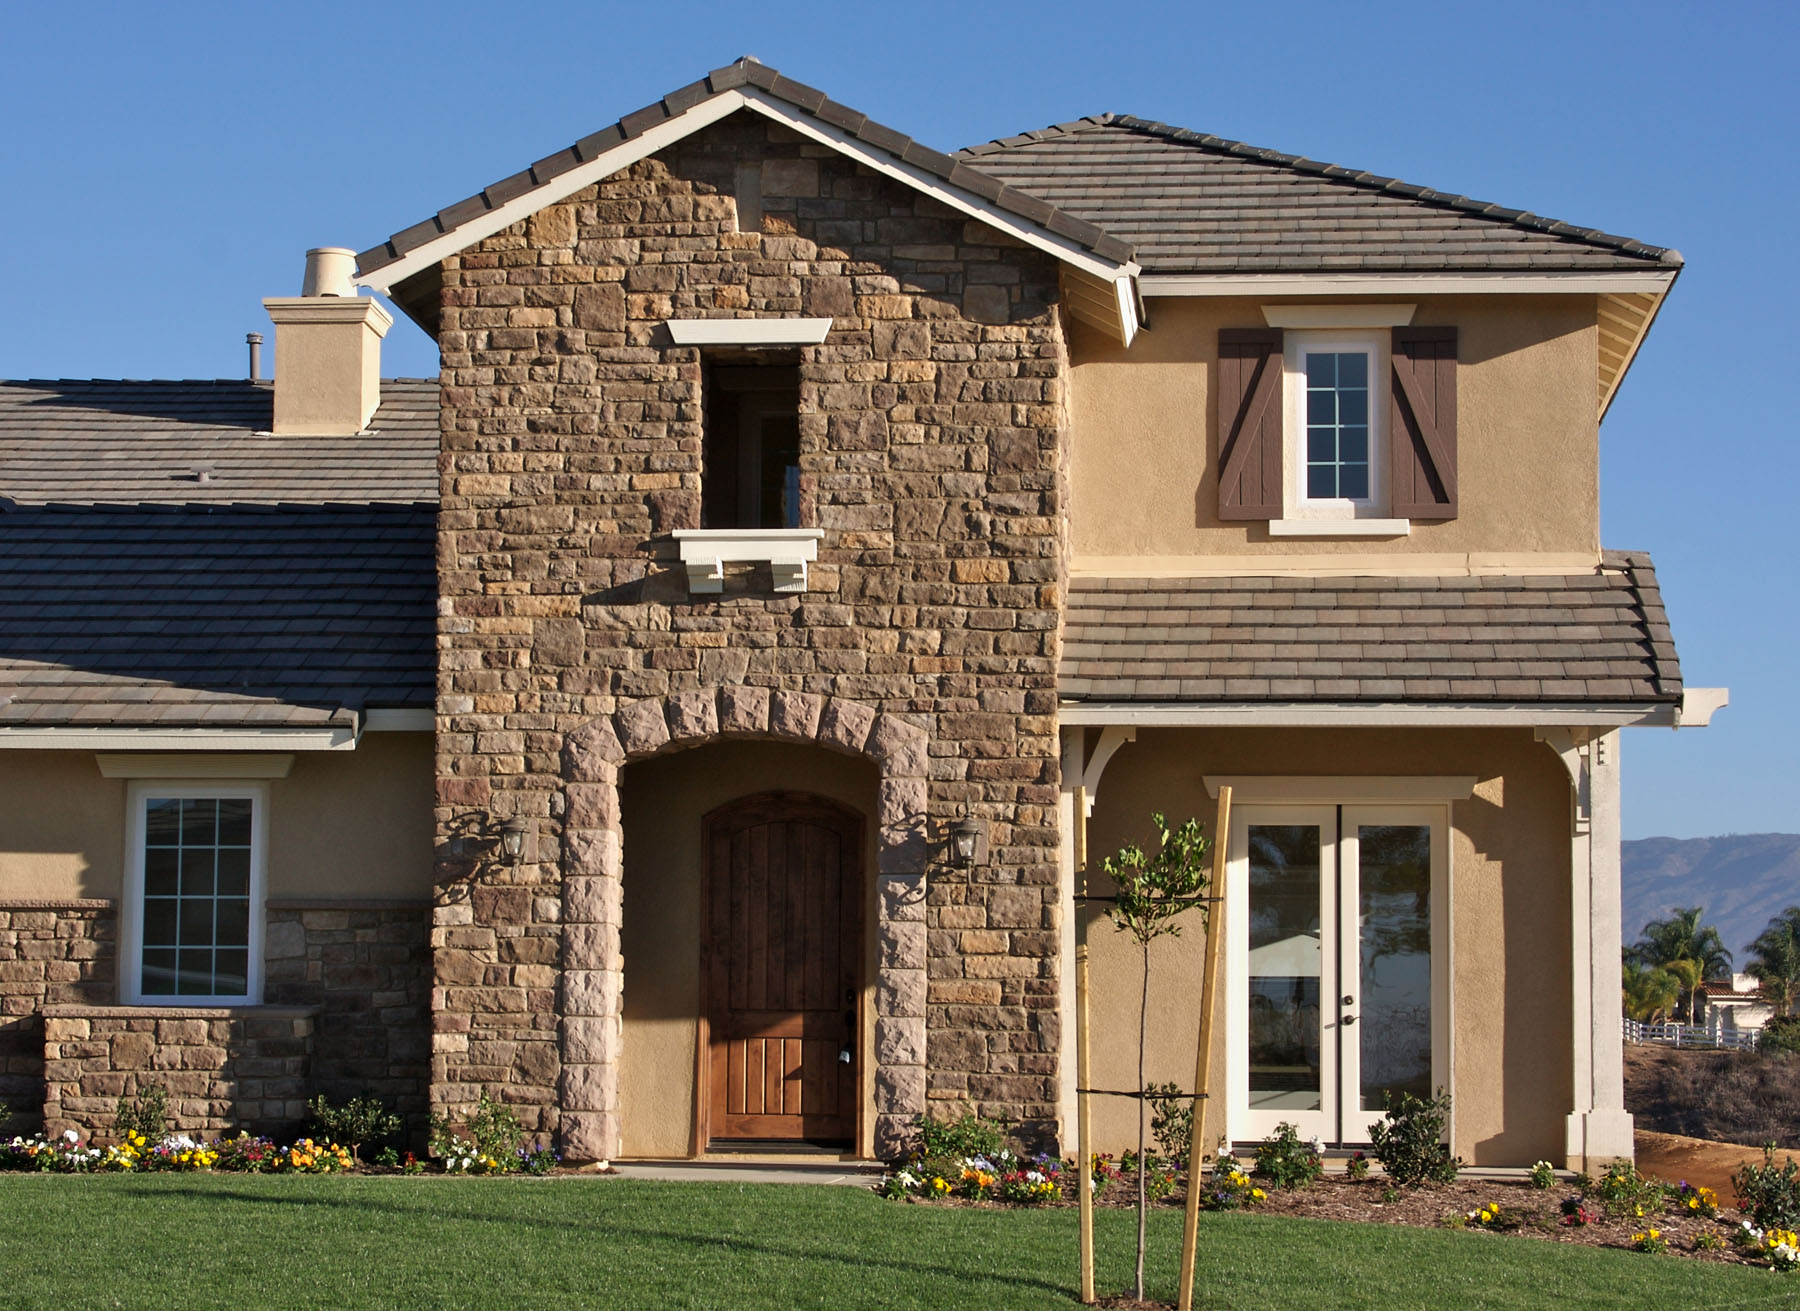 stucco design ideas download - Stucco Design Ideas